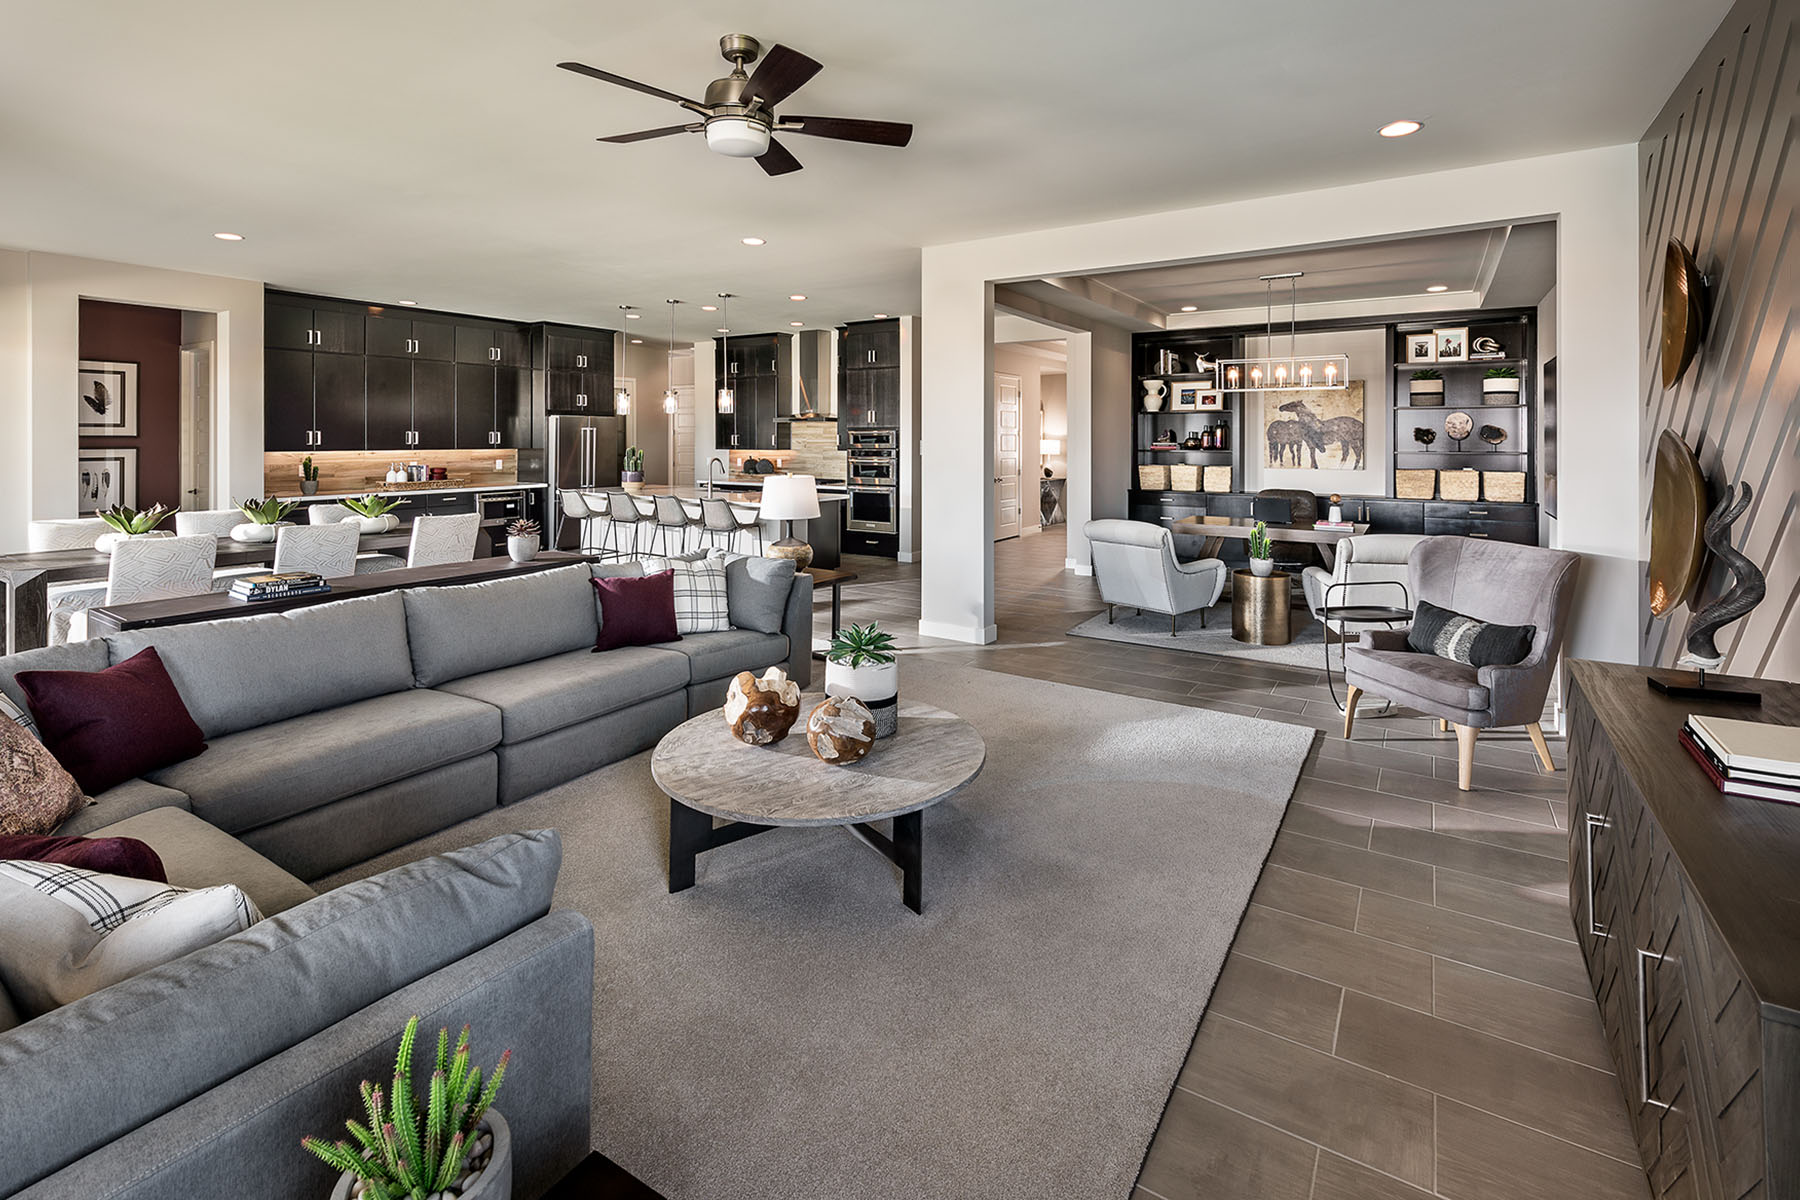 Brookstone Plan Greatroom at Azure Canyon in Litchfield Park Arizona by Mattamy Homes